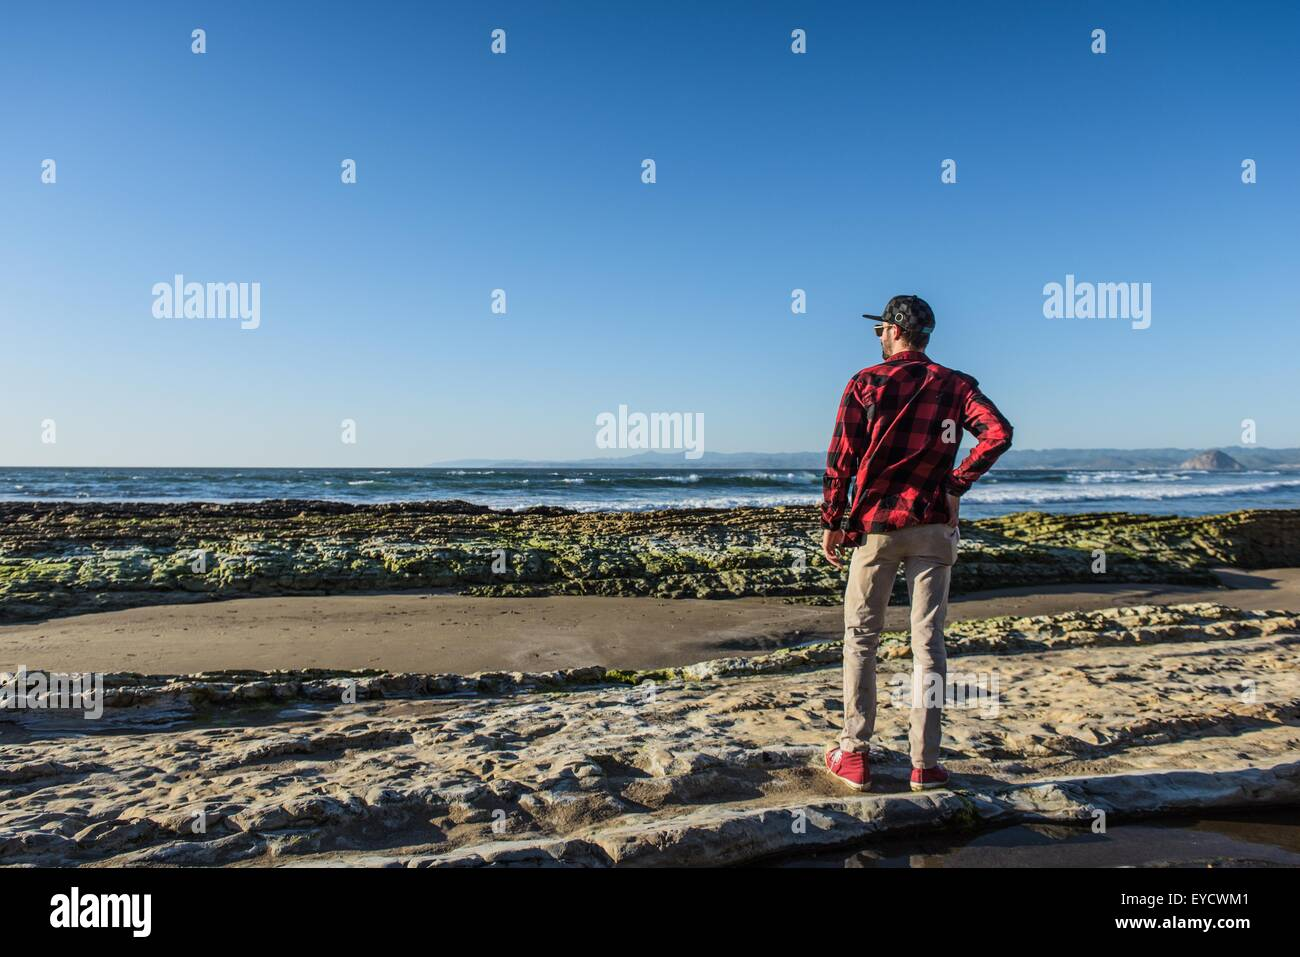 Young man standing on beach looking at ocean, rear view - Stock Image